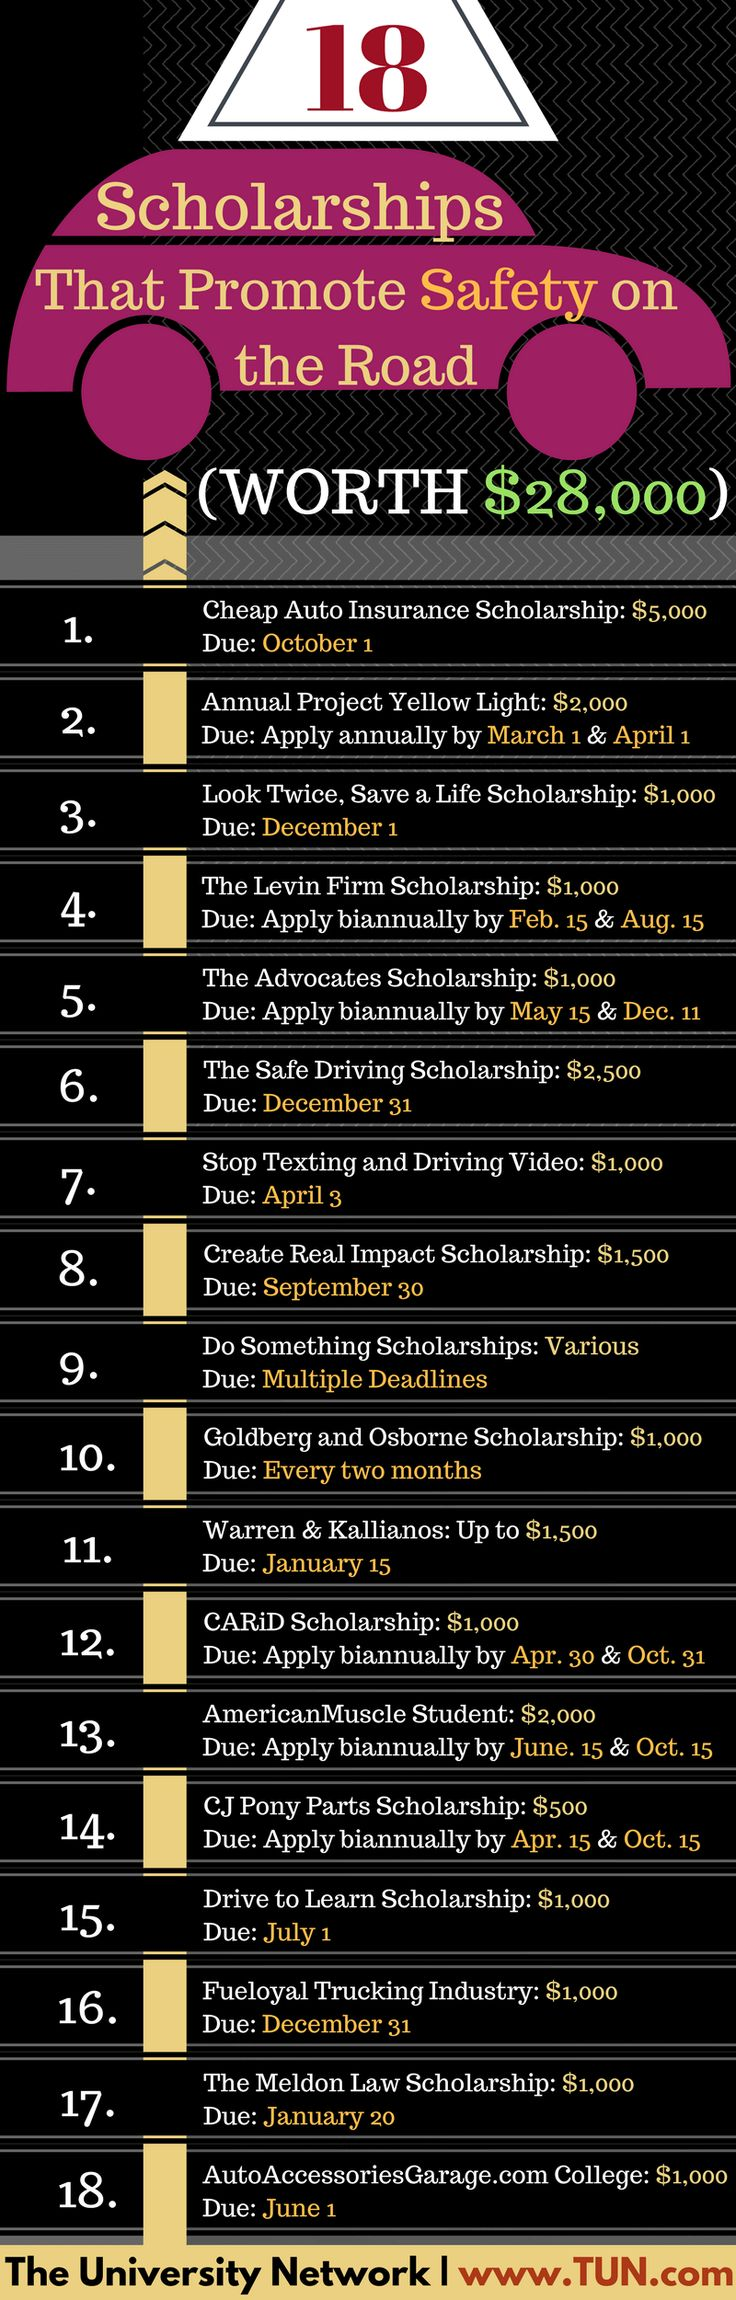 18 Scholarships That Promote Safety on the